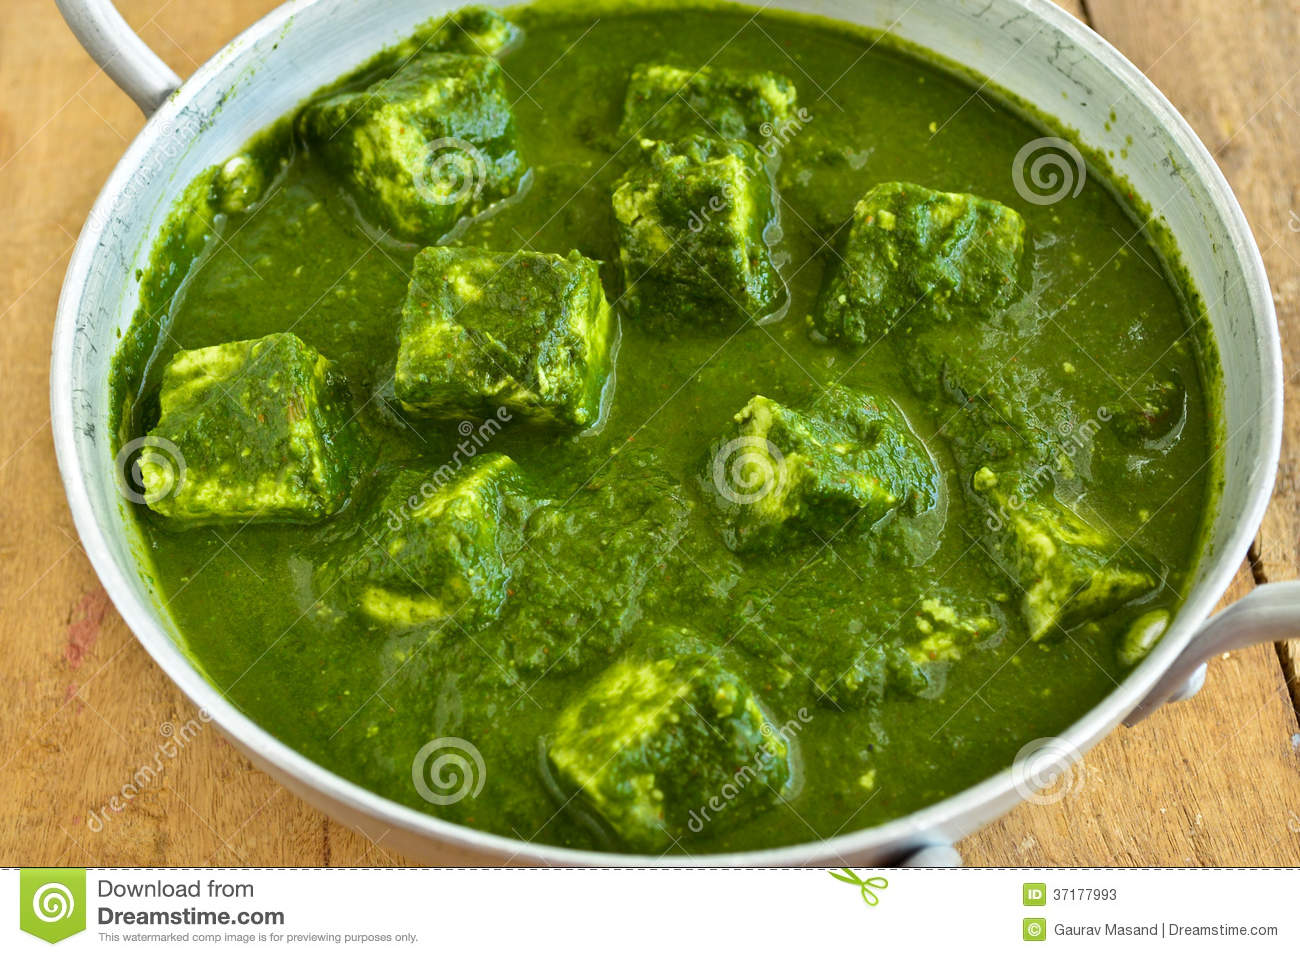 Palak Paneer Is A Traditional Popular Indian Dish Of Spinach & Cheese.